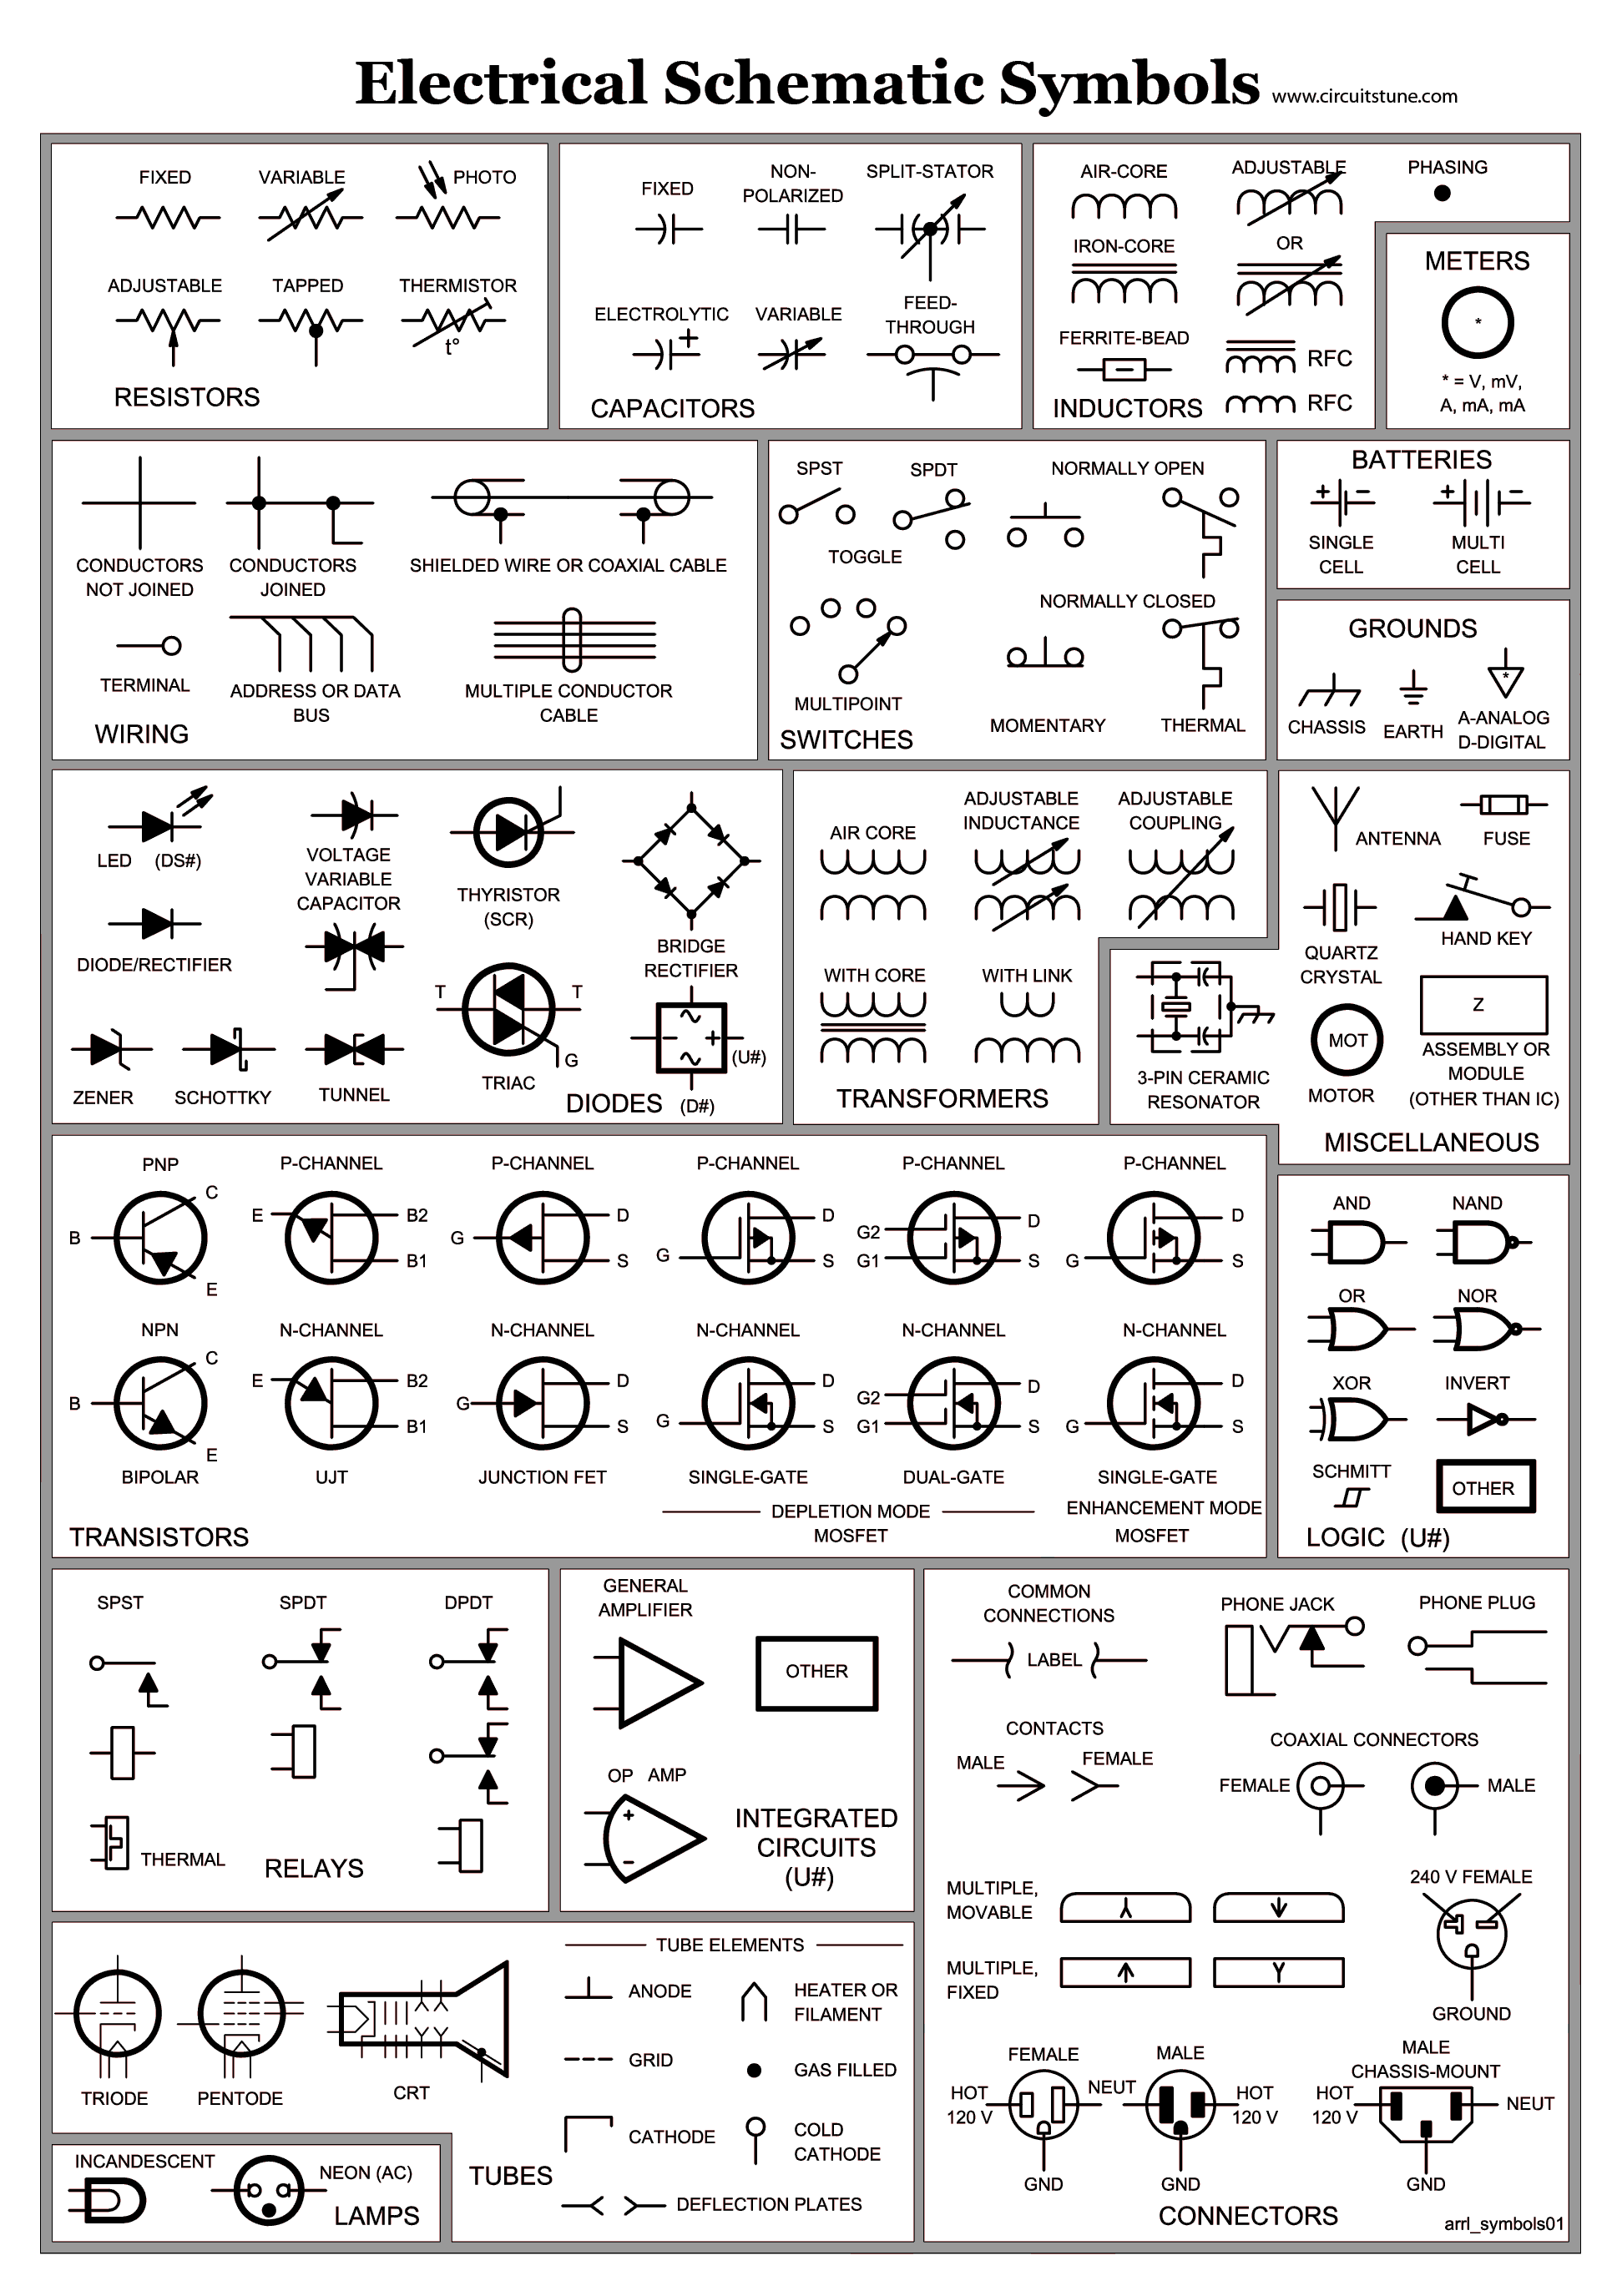 small resolution of electrical schematic symbols wire diagram symbols automotive wiring circuit diagram symbols electrical schematic symbols wire diagram